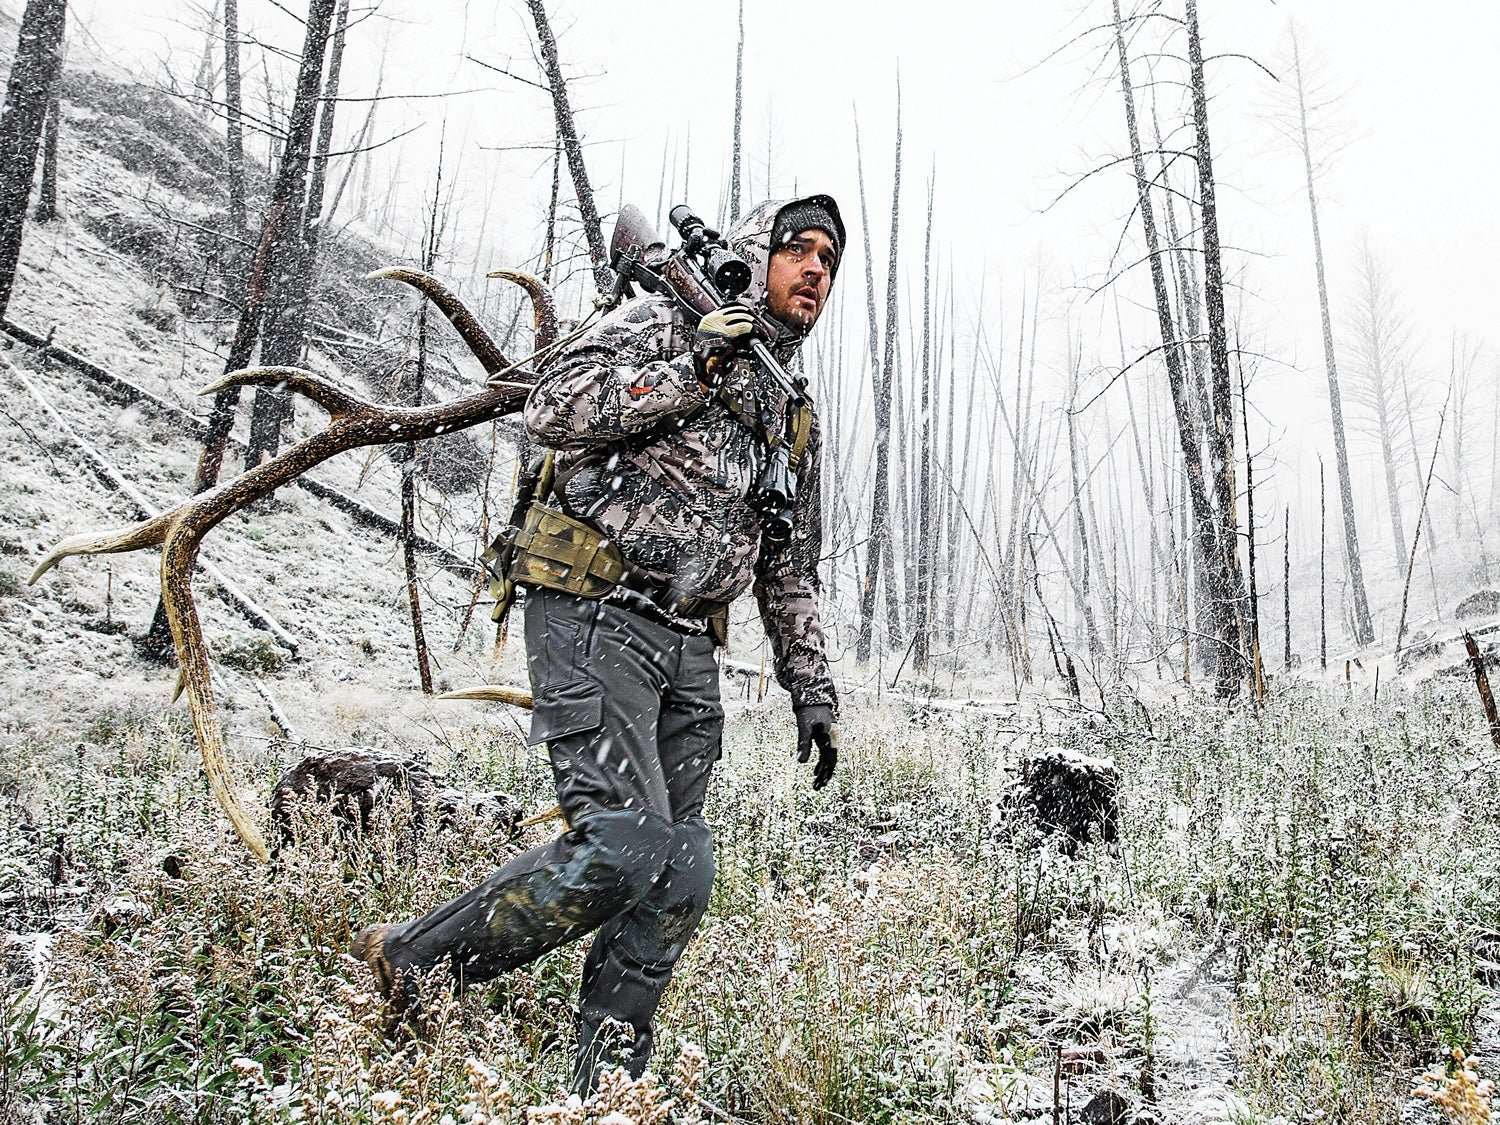 Underrated survival skills you should learn right now